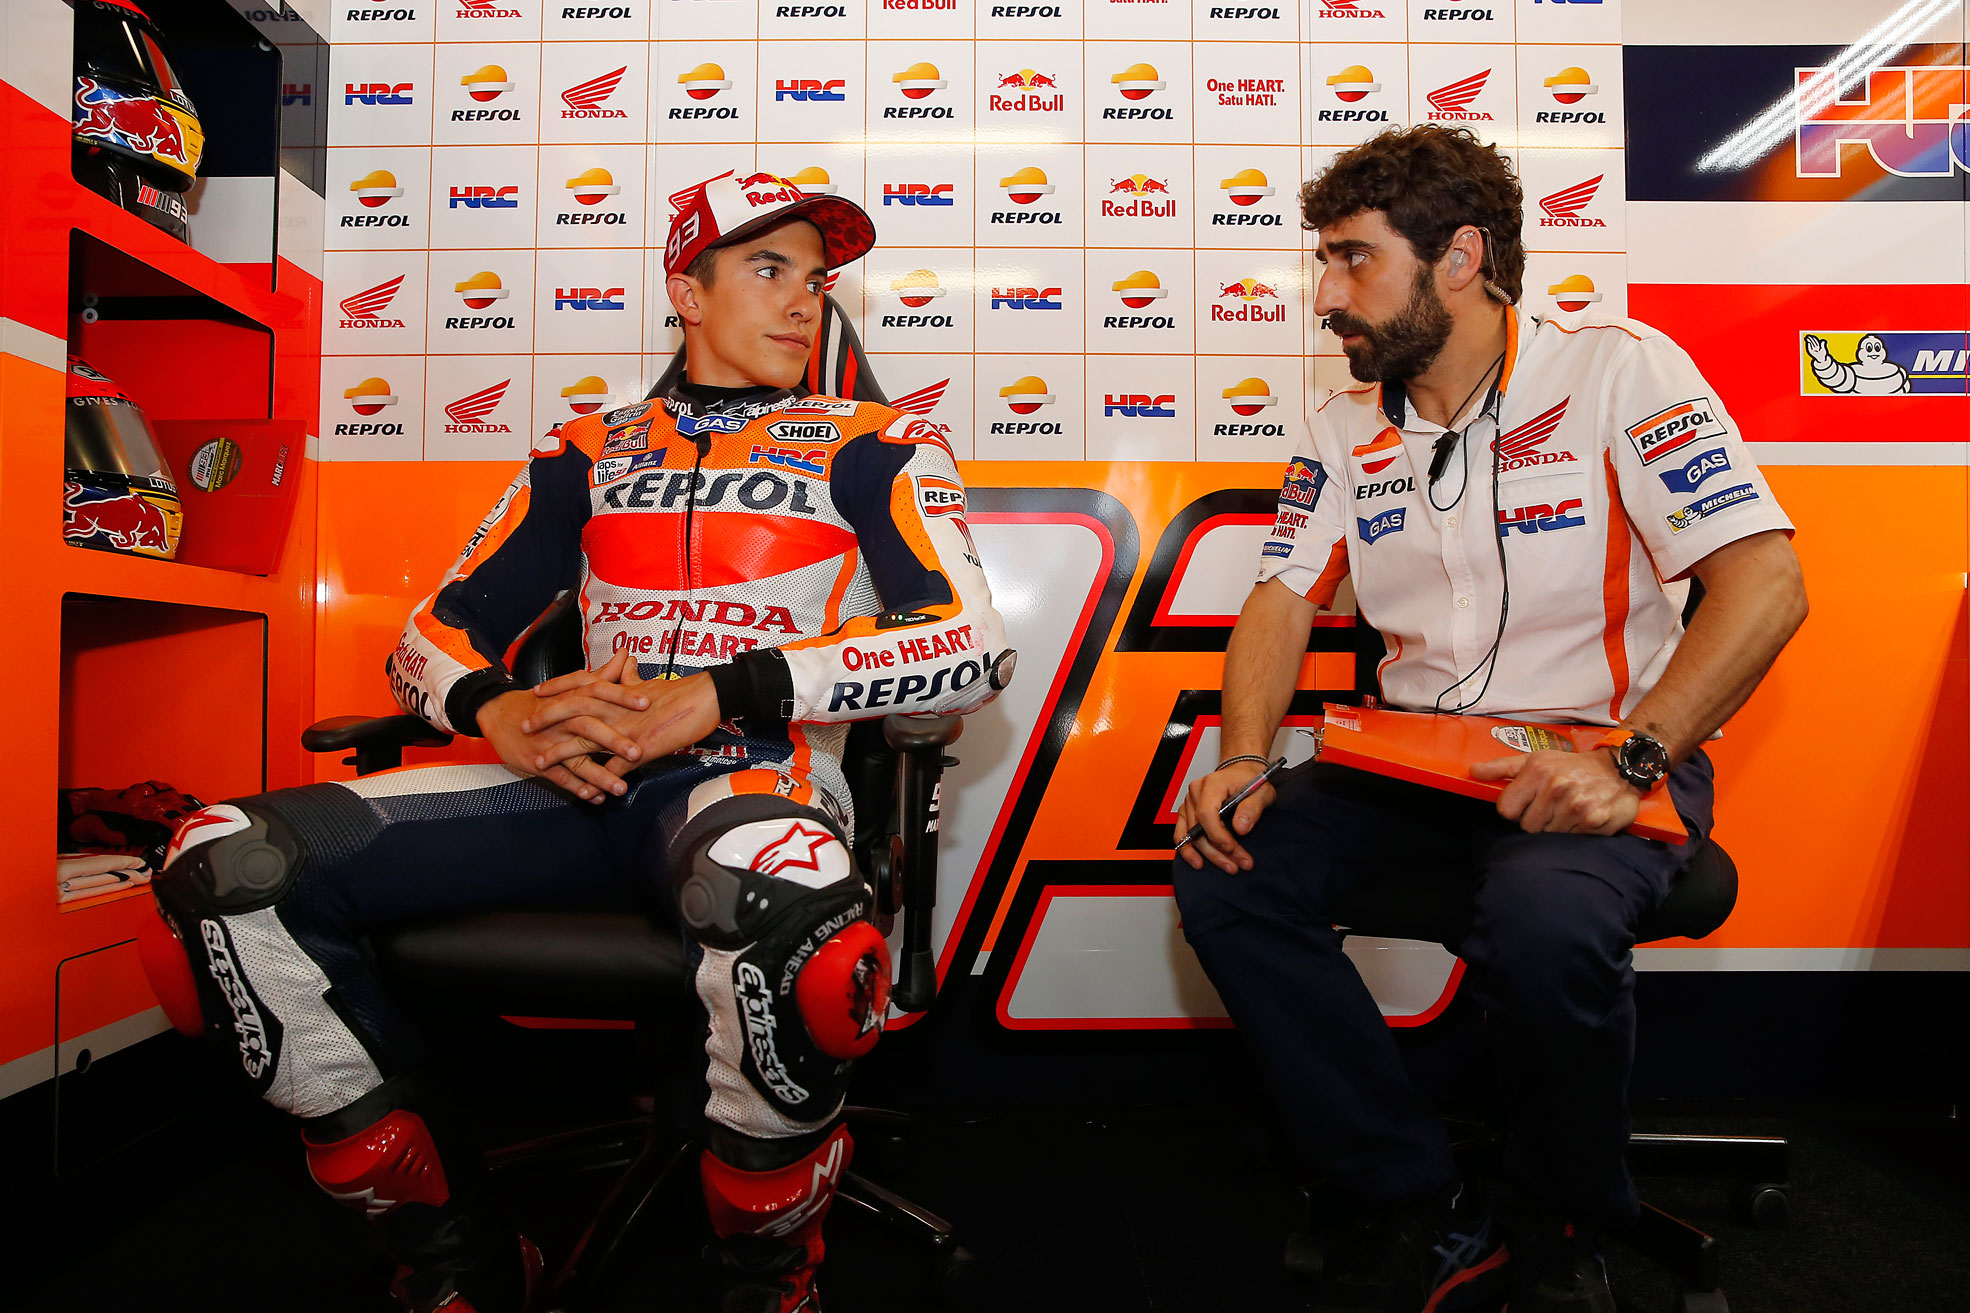 Marc Márquez and Santi Hernández at the box